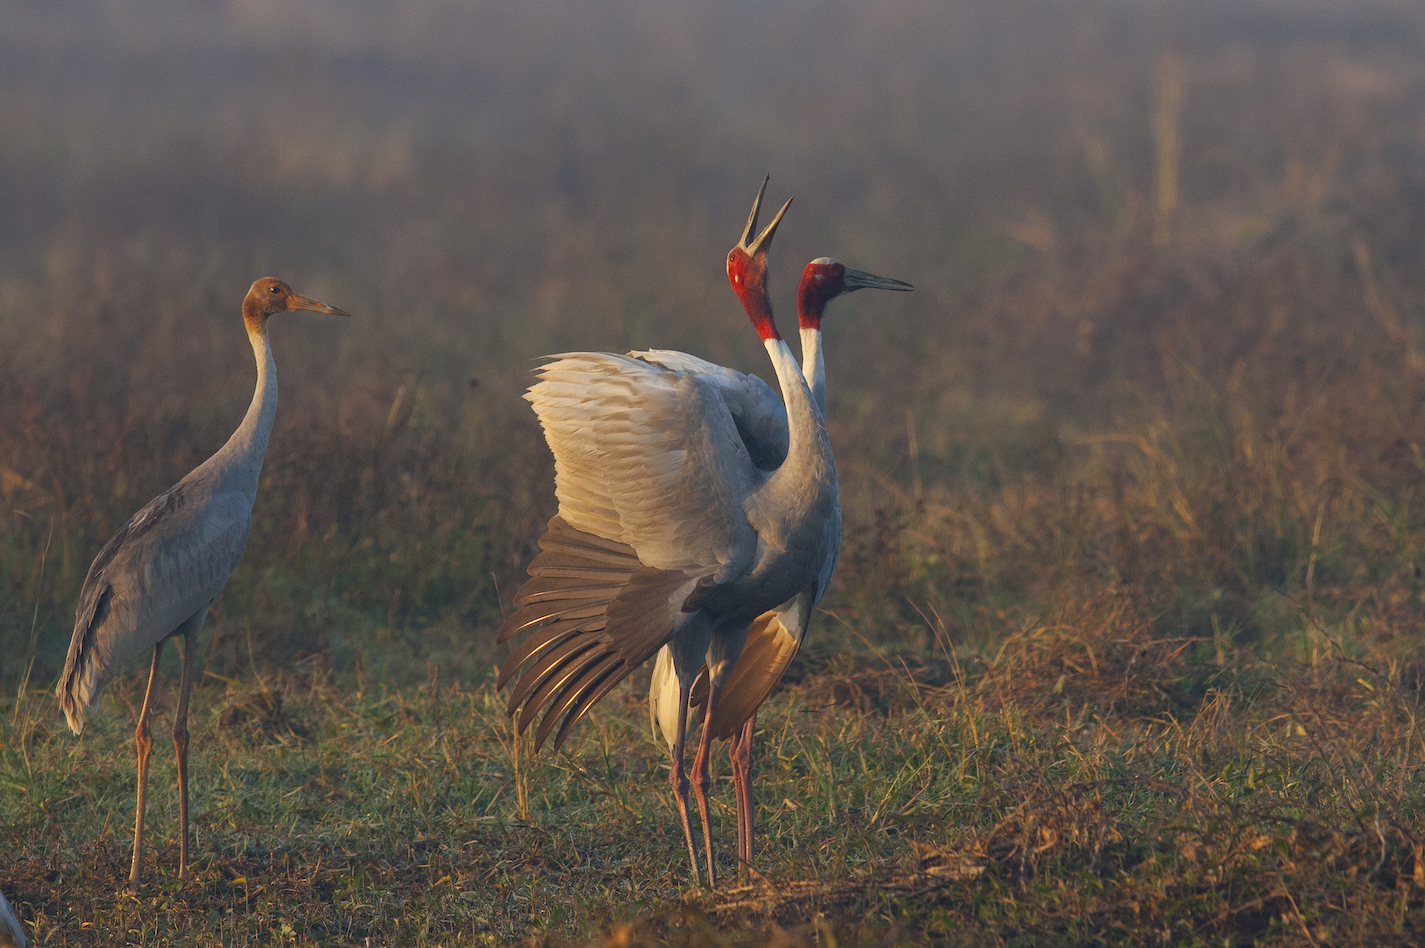 Top: At just over five feet in height, the sarus crane is the tallest flying bird in the world. It looks even taller when it stretches its neck, spreads its wings, and emit loud, shrill trumpeting calls.  Above: Sarus cranes are known to live comfortably around human populations. In Uttar Pradesh, they are seen living in open, cultivated fields as well as local marshlands and ponds.  Cover Photo: The sarus crane (Antigone antigone) is easily recognised by the naked, blood-red patch on its neck and head, and beautiful grey plumage. The bare red skin turns brighter during the breeding season that falls during the heavy monsoons.